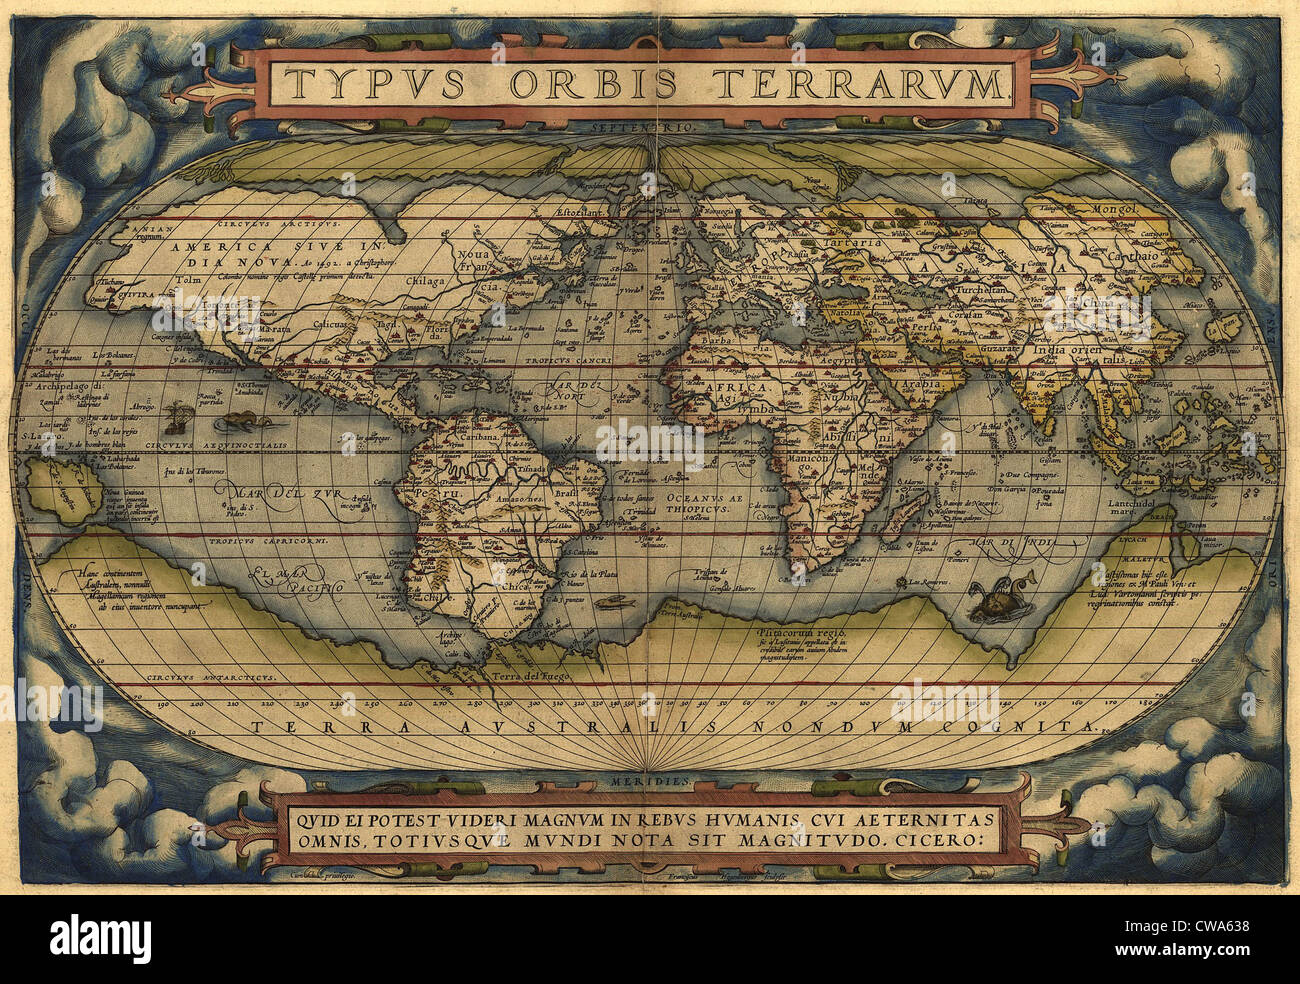 Images Of The World Maps Th Century on 1890's world map, civilization world map, world ethnic groups map, europe map, 1700's world map, first century world map, 13th century world map, java location on world map, ming dynasty world map, blank world map, old world map, 21st century world map, northern and southern hemisphere world map, ancient world map, elizabethan era world map, 19th century imperialism world map, decorative world wall map, 5th century world map, 1800's world map, 14th century world map,